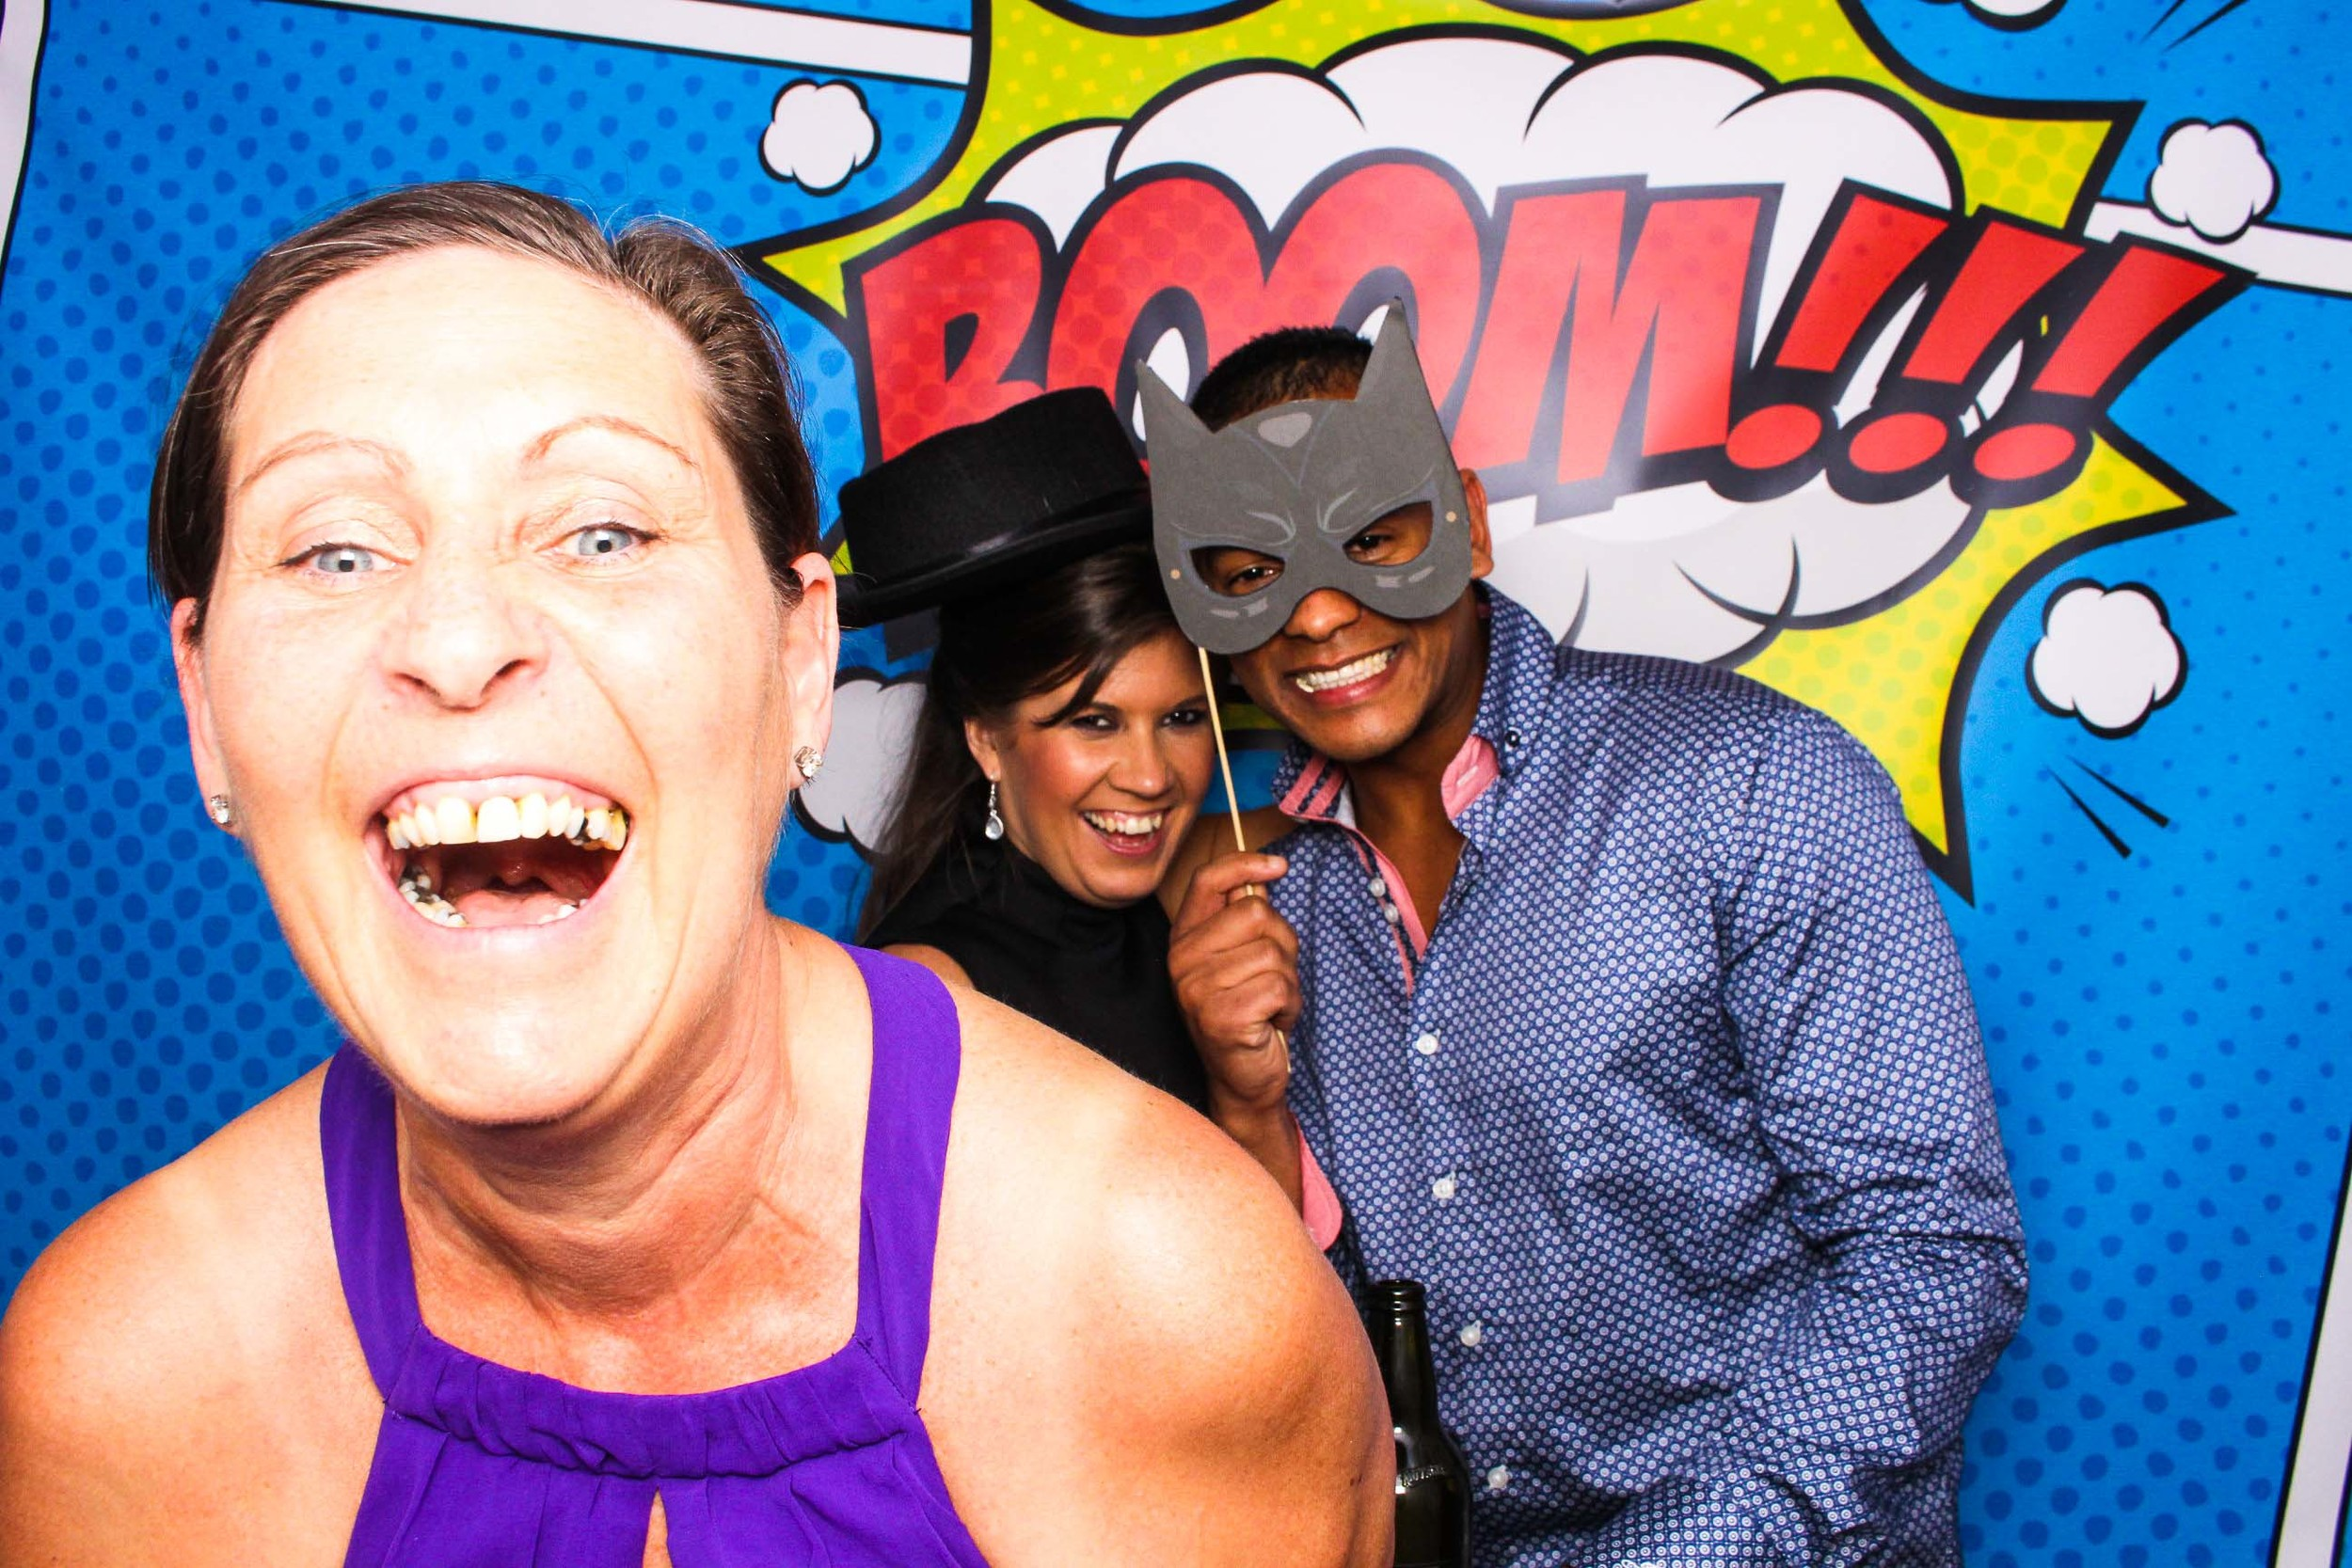 Fotoauto Photo Booth Hire - Shop Direct-238.jpg